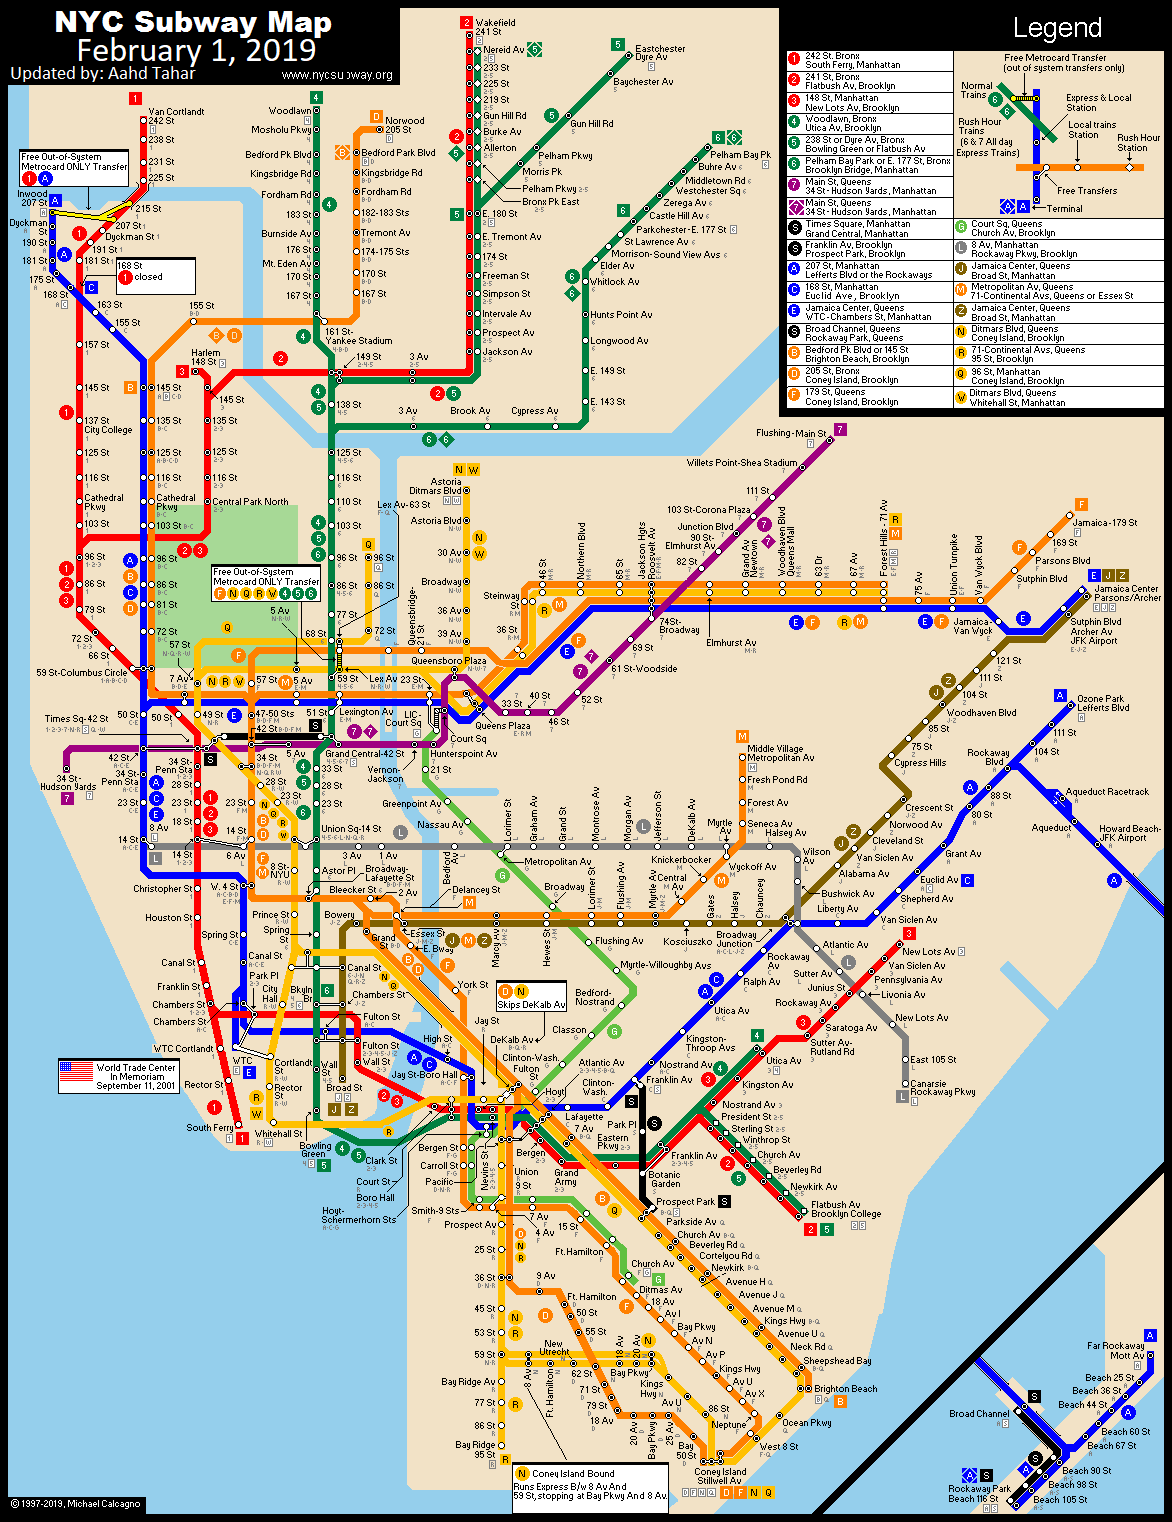 New York City Metro Map .nycsubway.org: New York City Subway Route Map by Michael Calcagno